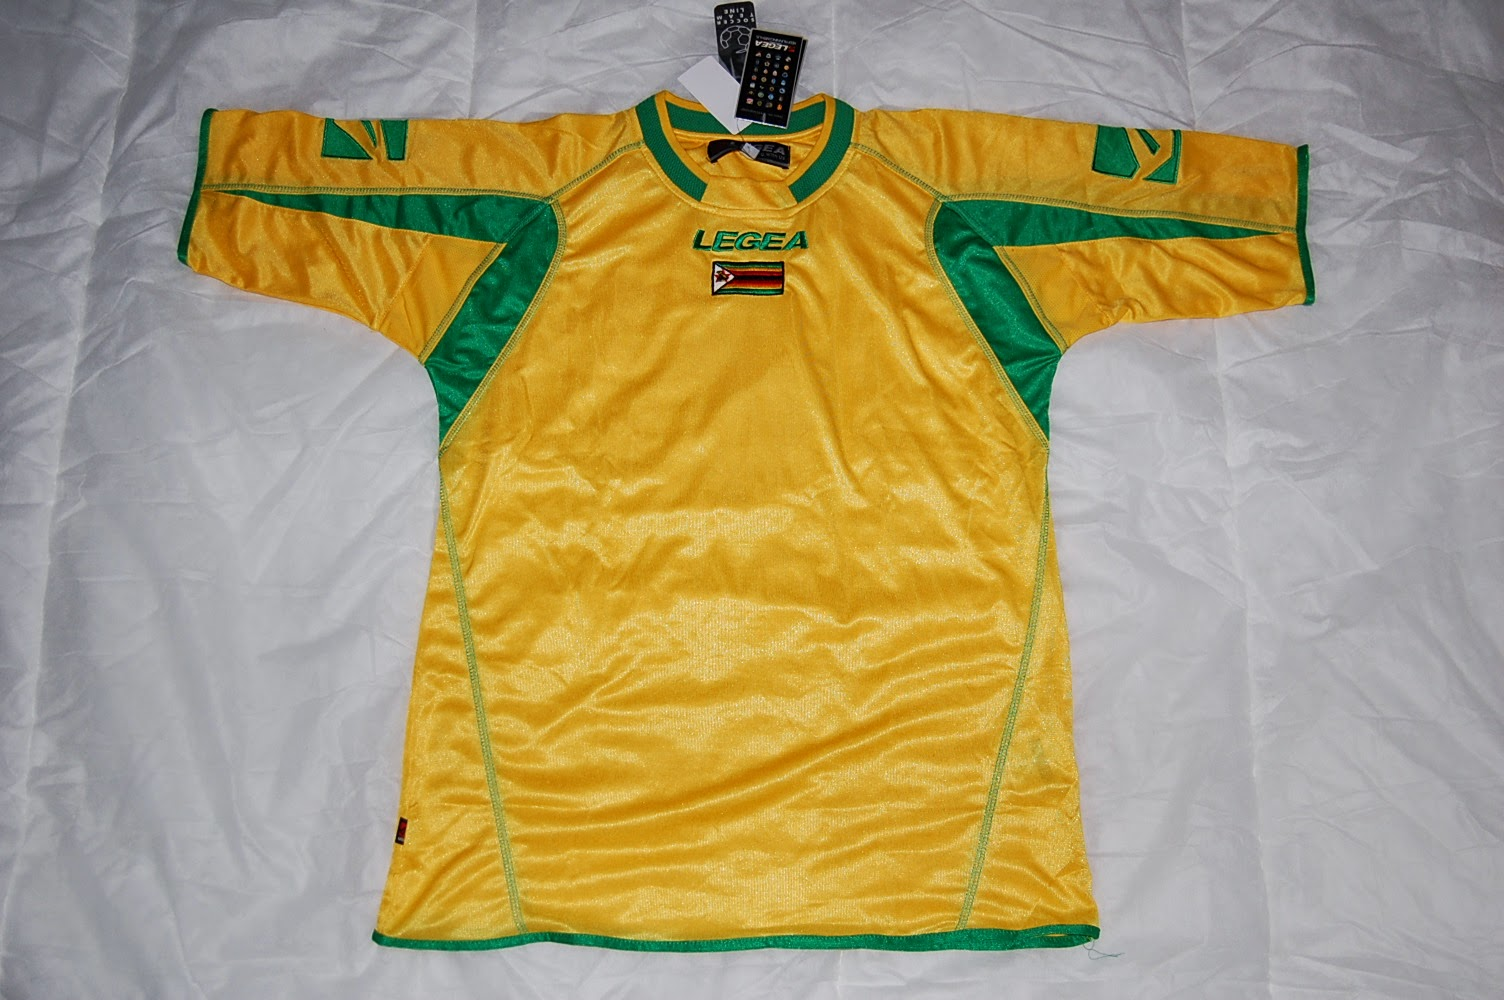 Legea Zimbabwe football shirt